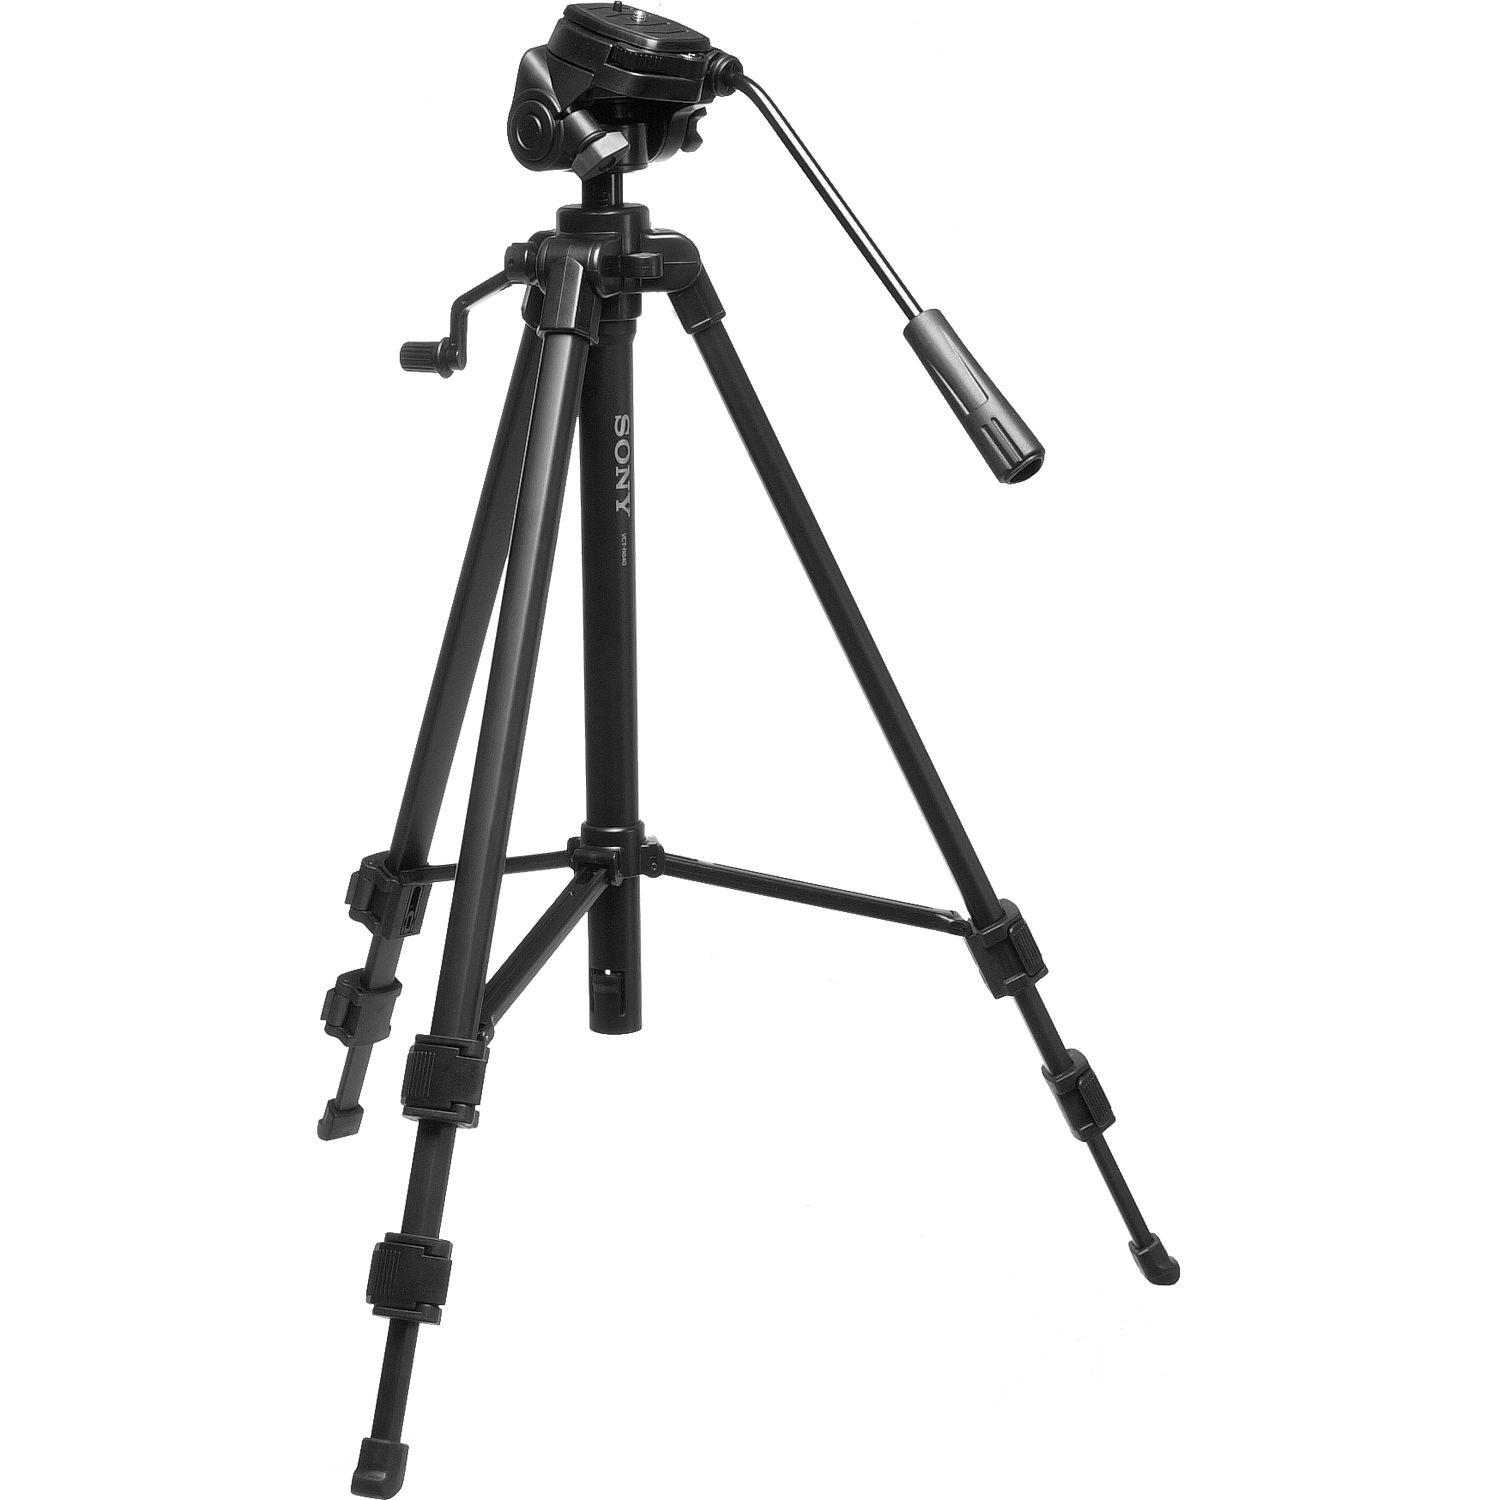 Sony Vct R640 Lightweight Video Tripod Vctr640 Bh Photo Lifeproof Ipad Air Fre Case 1907 02 Glacier